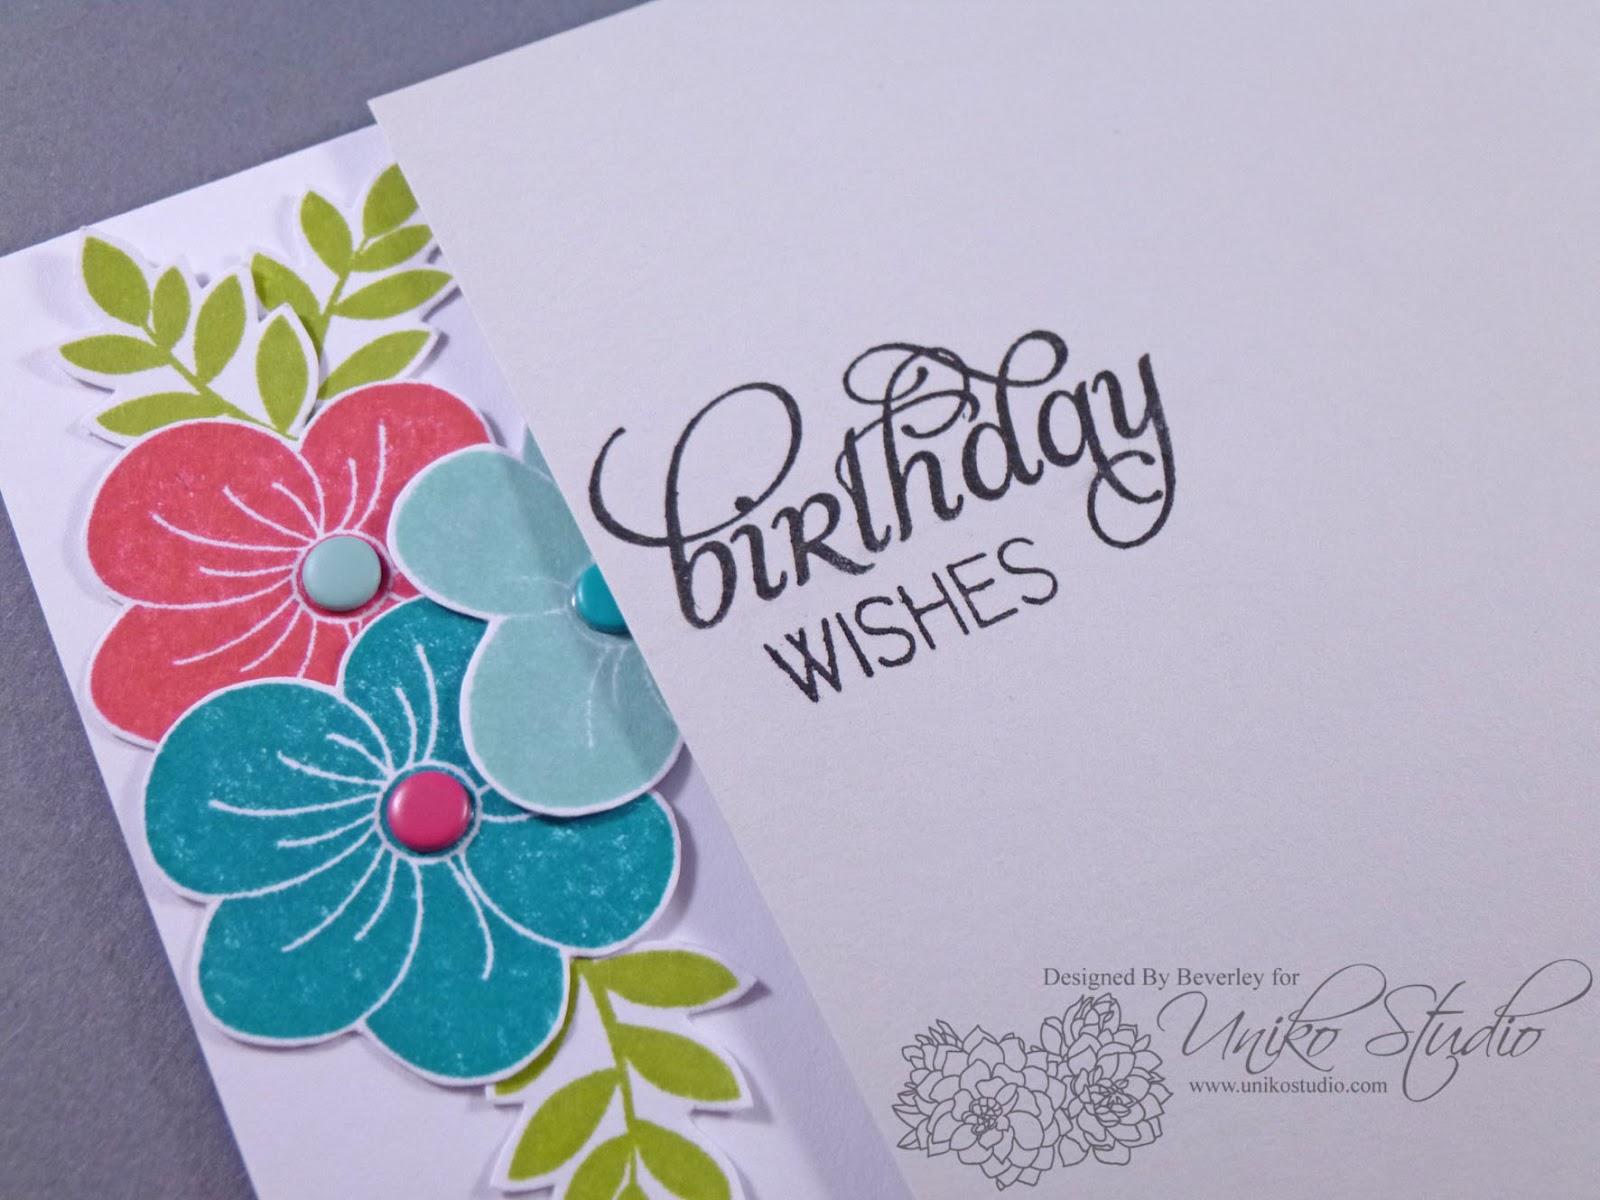 The Most Time Consuming Part Of This Card Was Fussy Cutting The Blooms And  Leaves, Otherwise This Card Was Super Simple And Quick To Assemble.